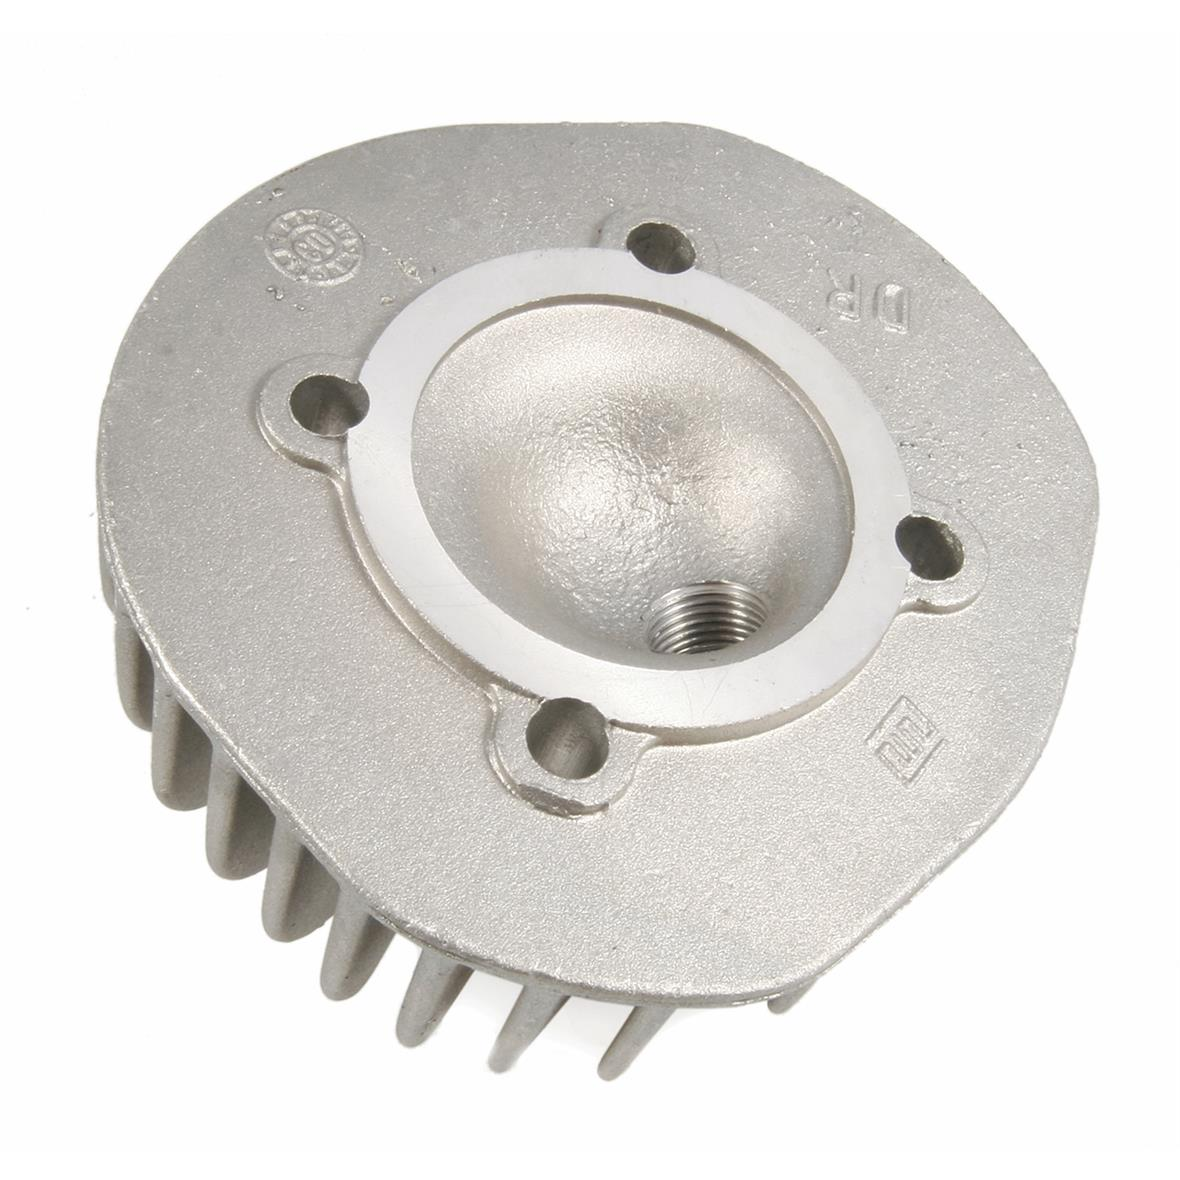 Product Image for 'Cylinder Head D.R. 75/85 cc for art. no. 10005000/10005100/10011000/10006100Title'